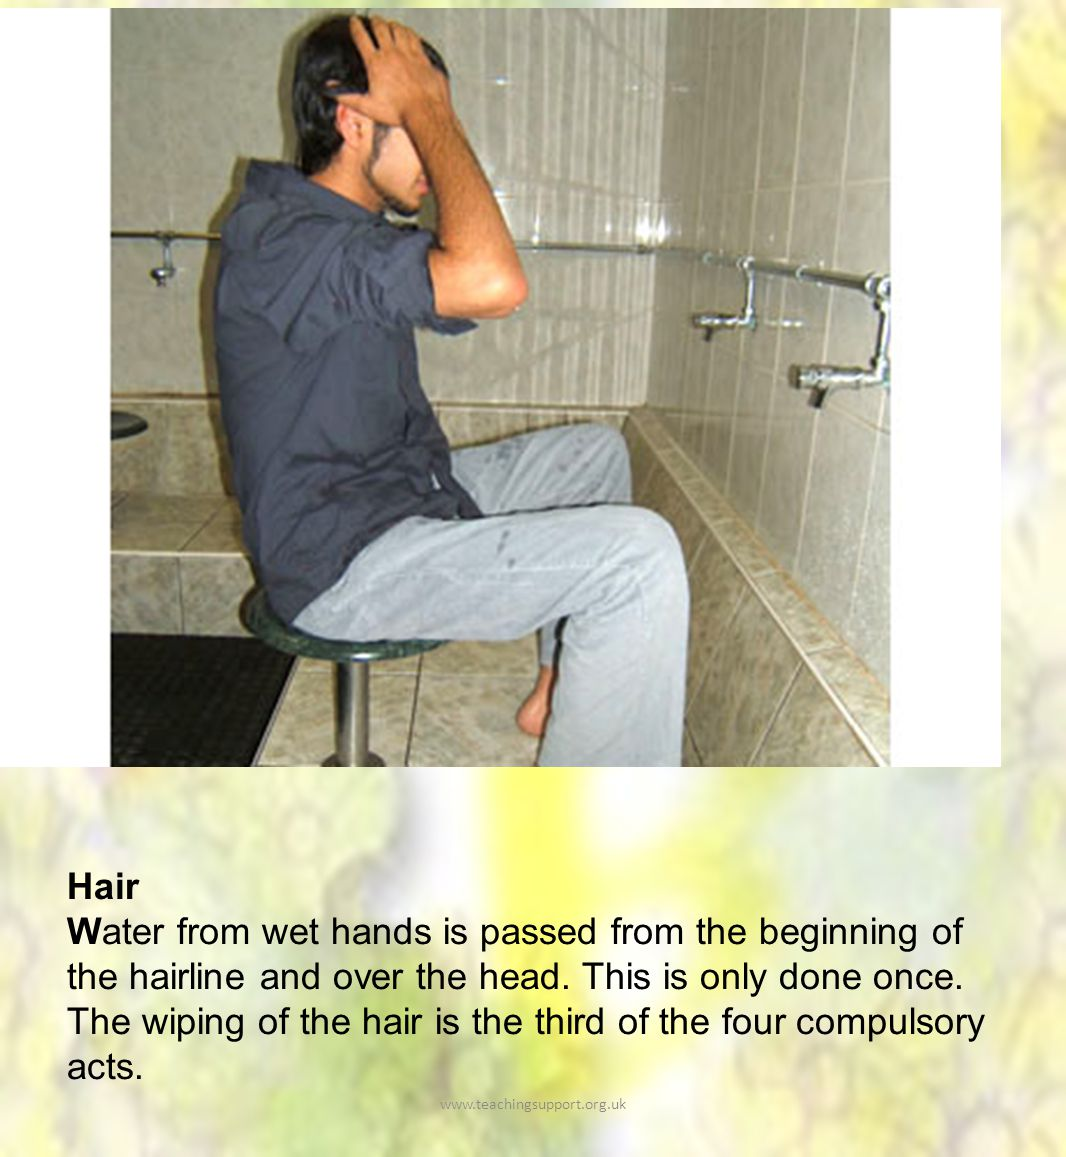 Hair Water from wet hands is passed from the beginning of the hairline and over the head.